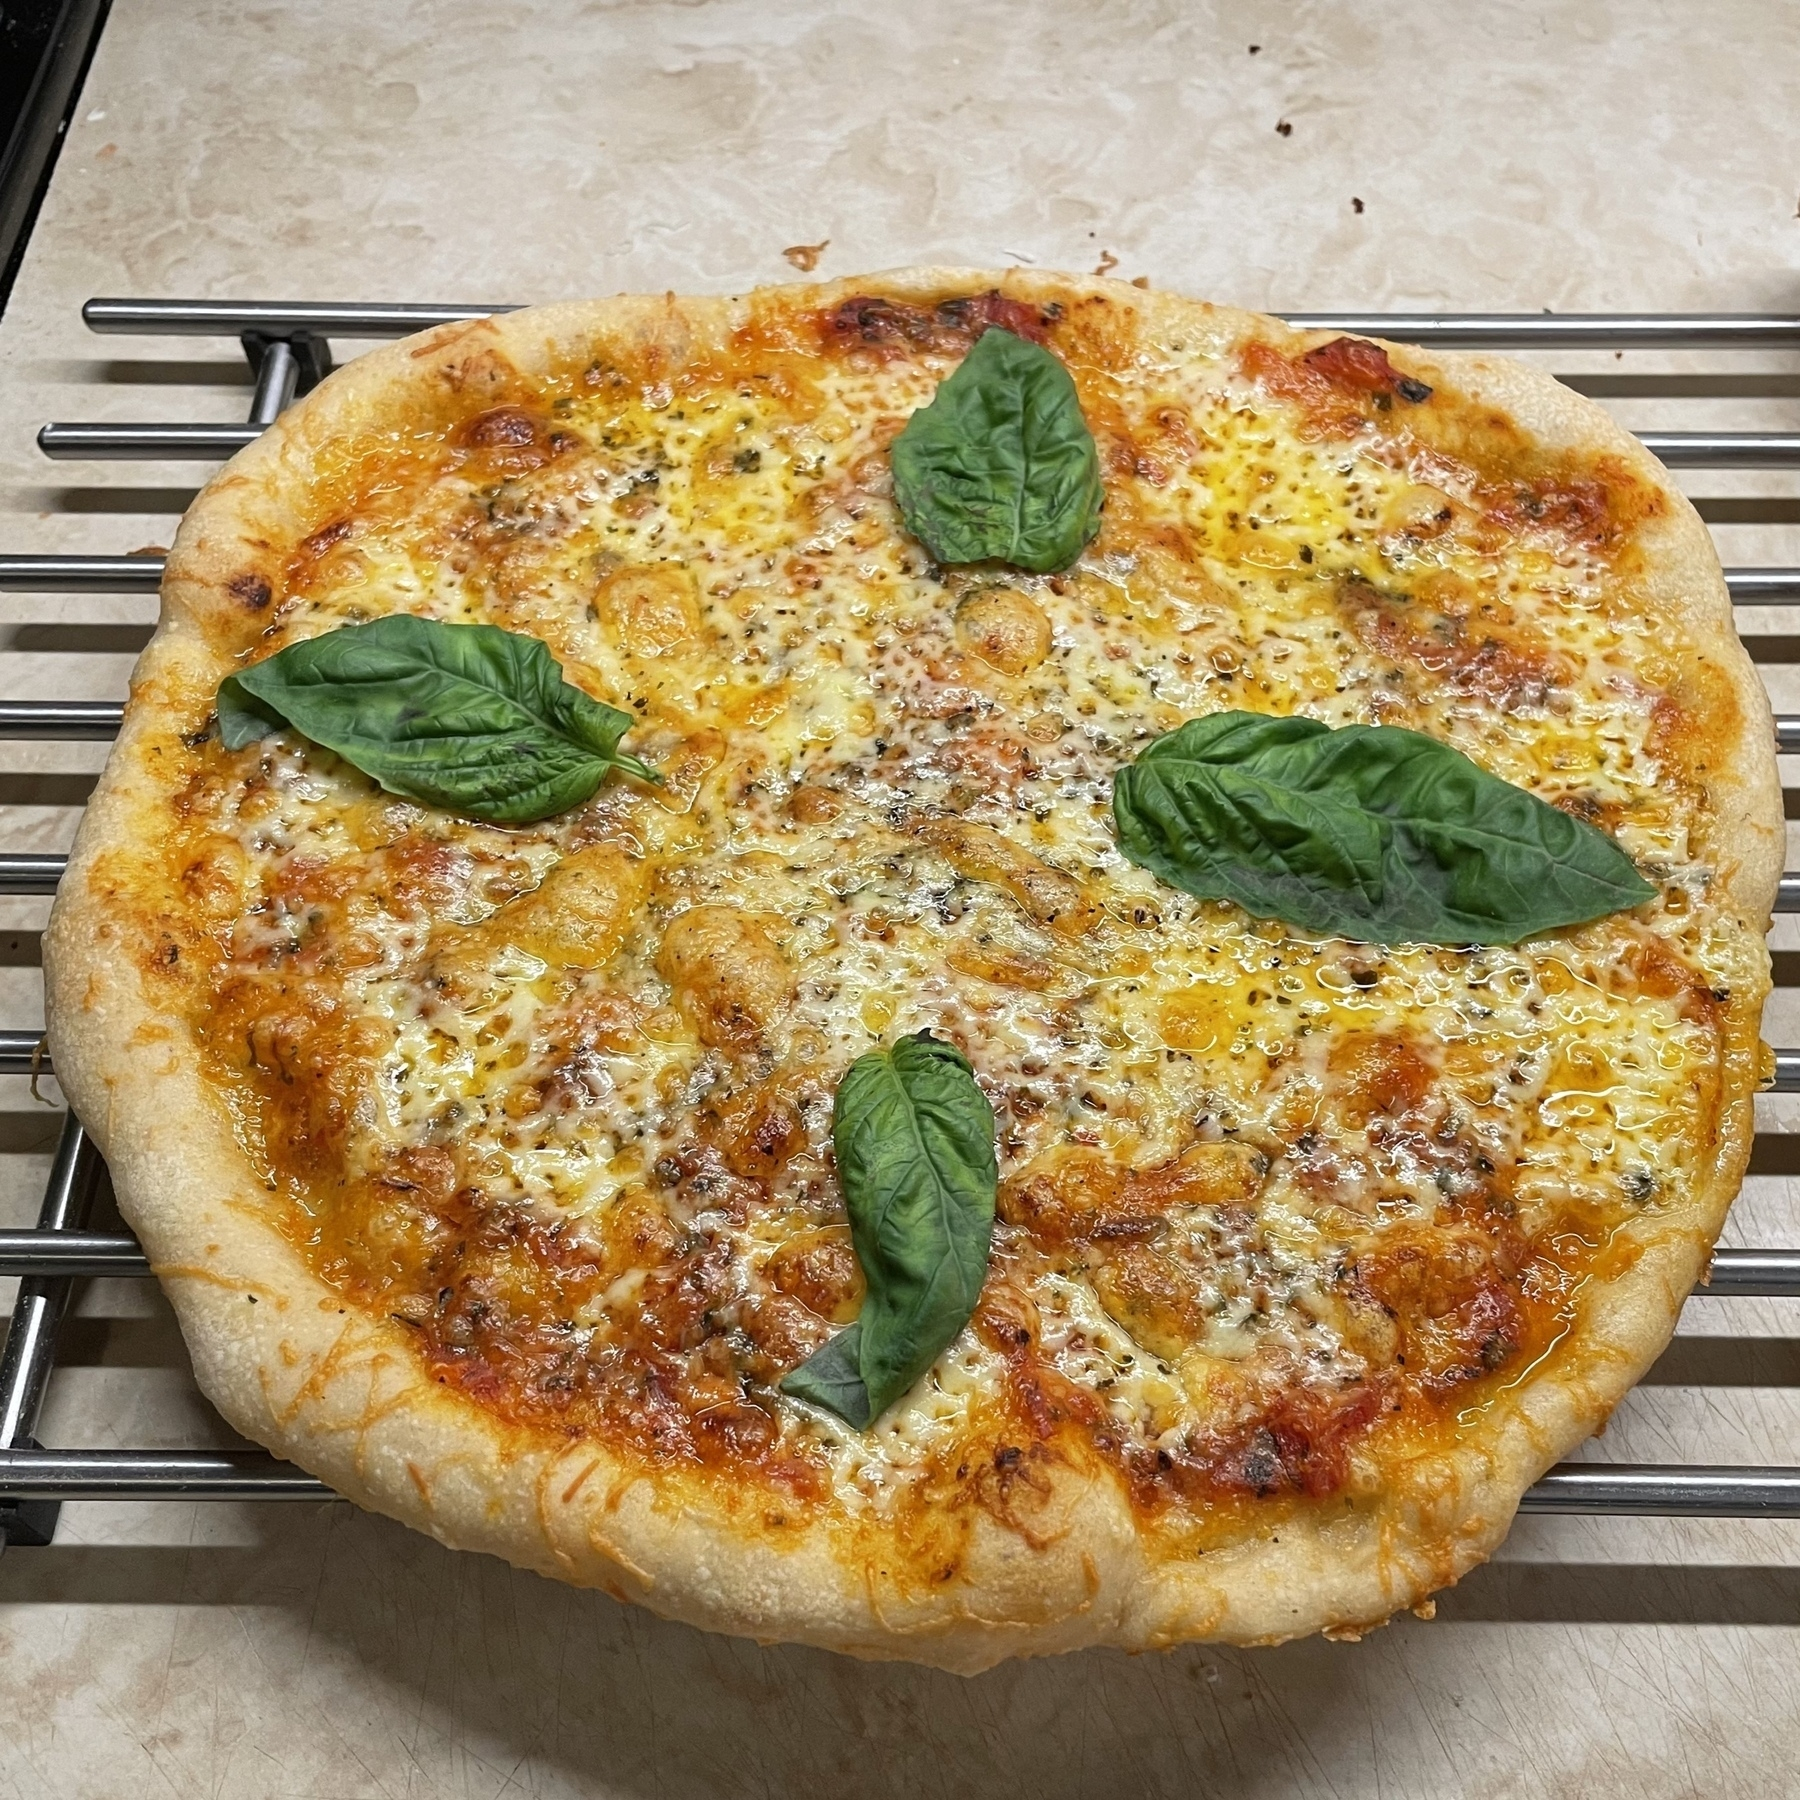 Cheese pizza on metal rack.